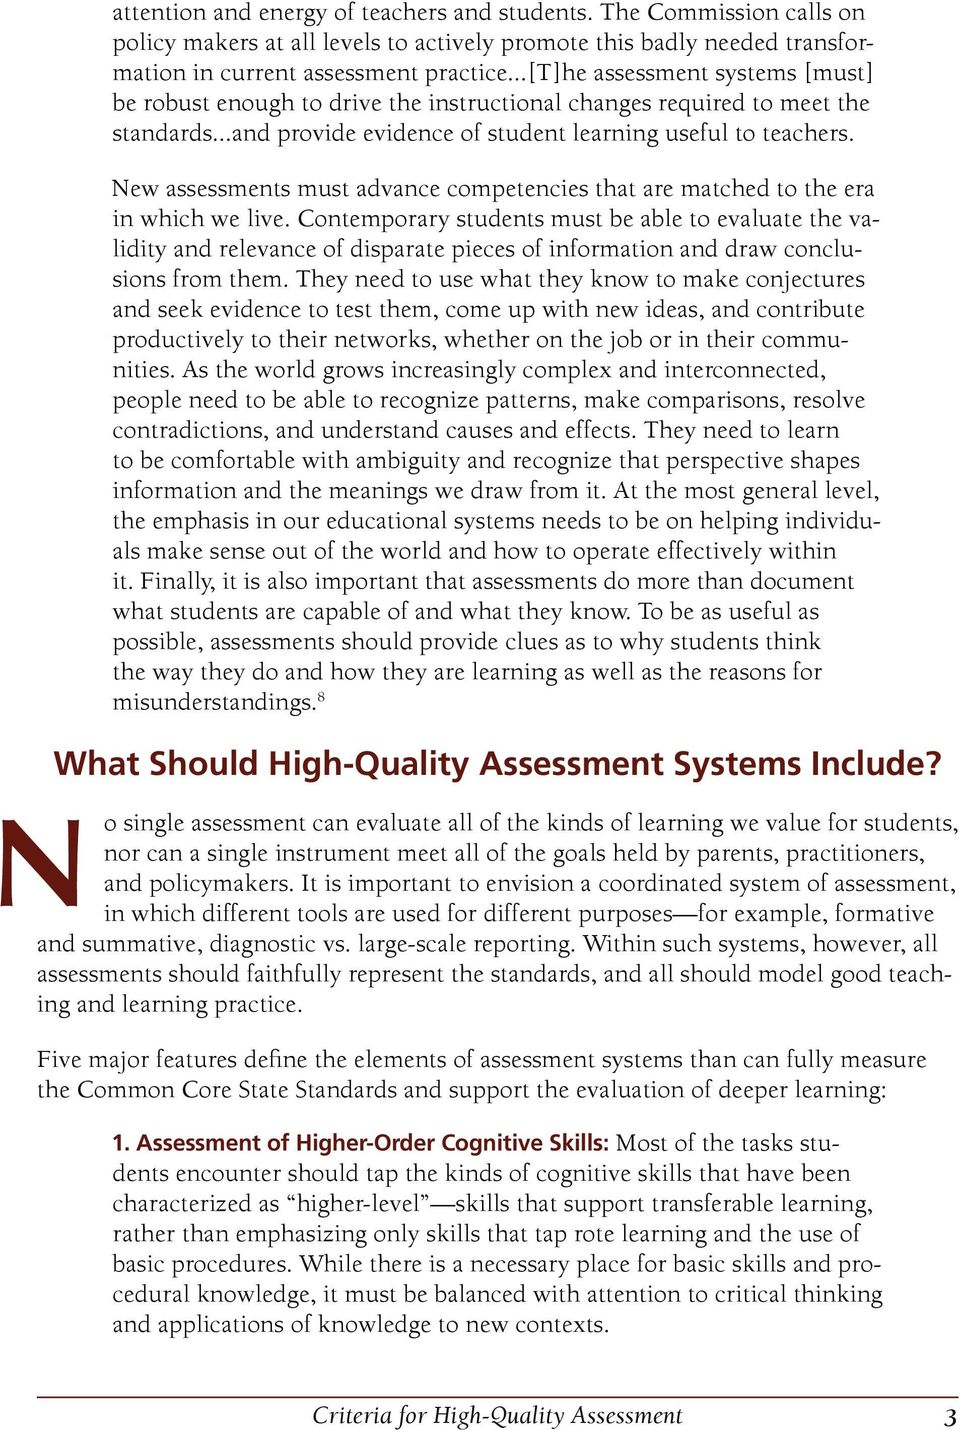 New assessments must advance competencies that are matched to the era in which we live.